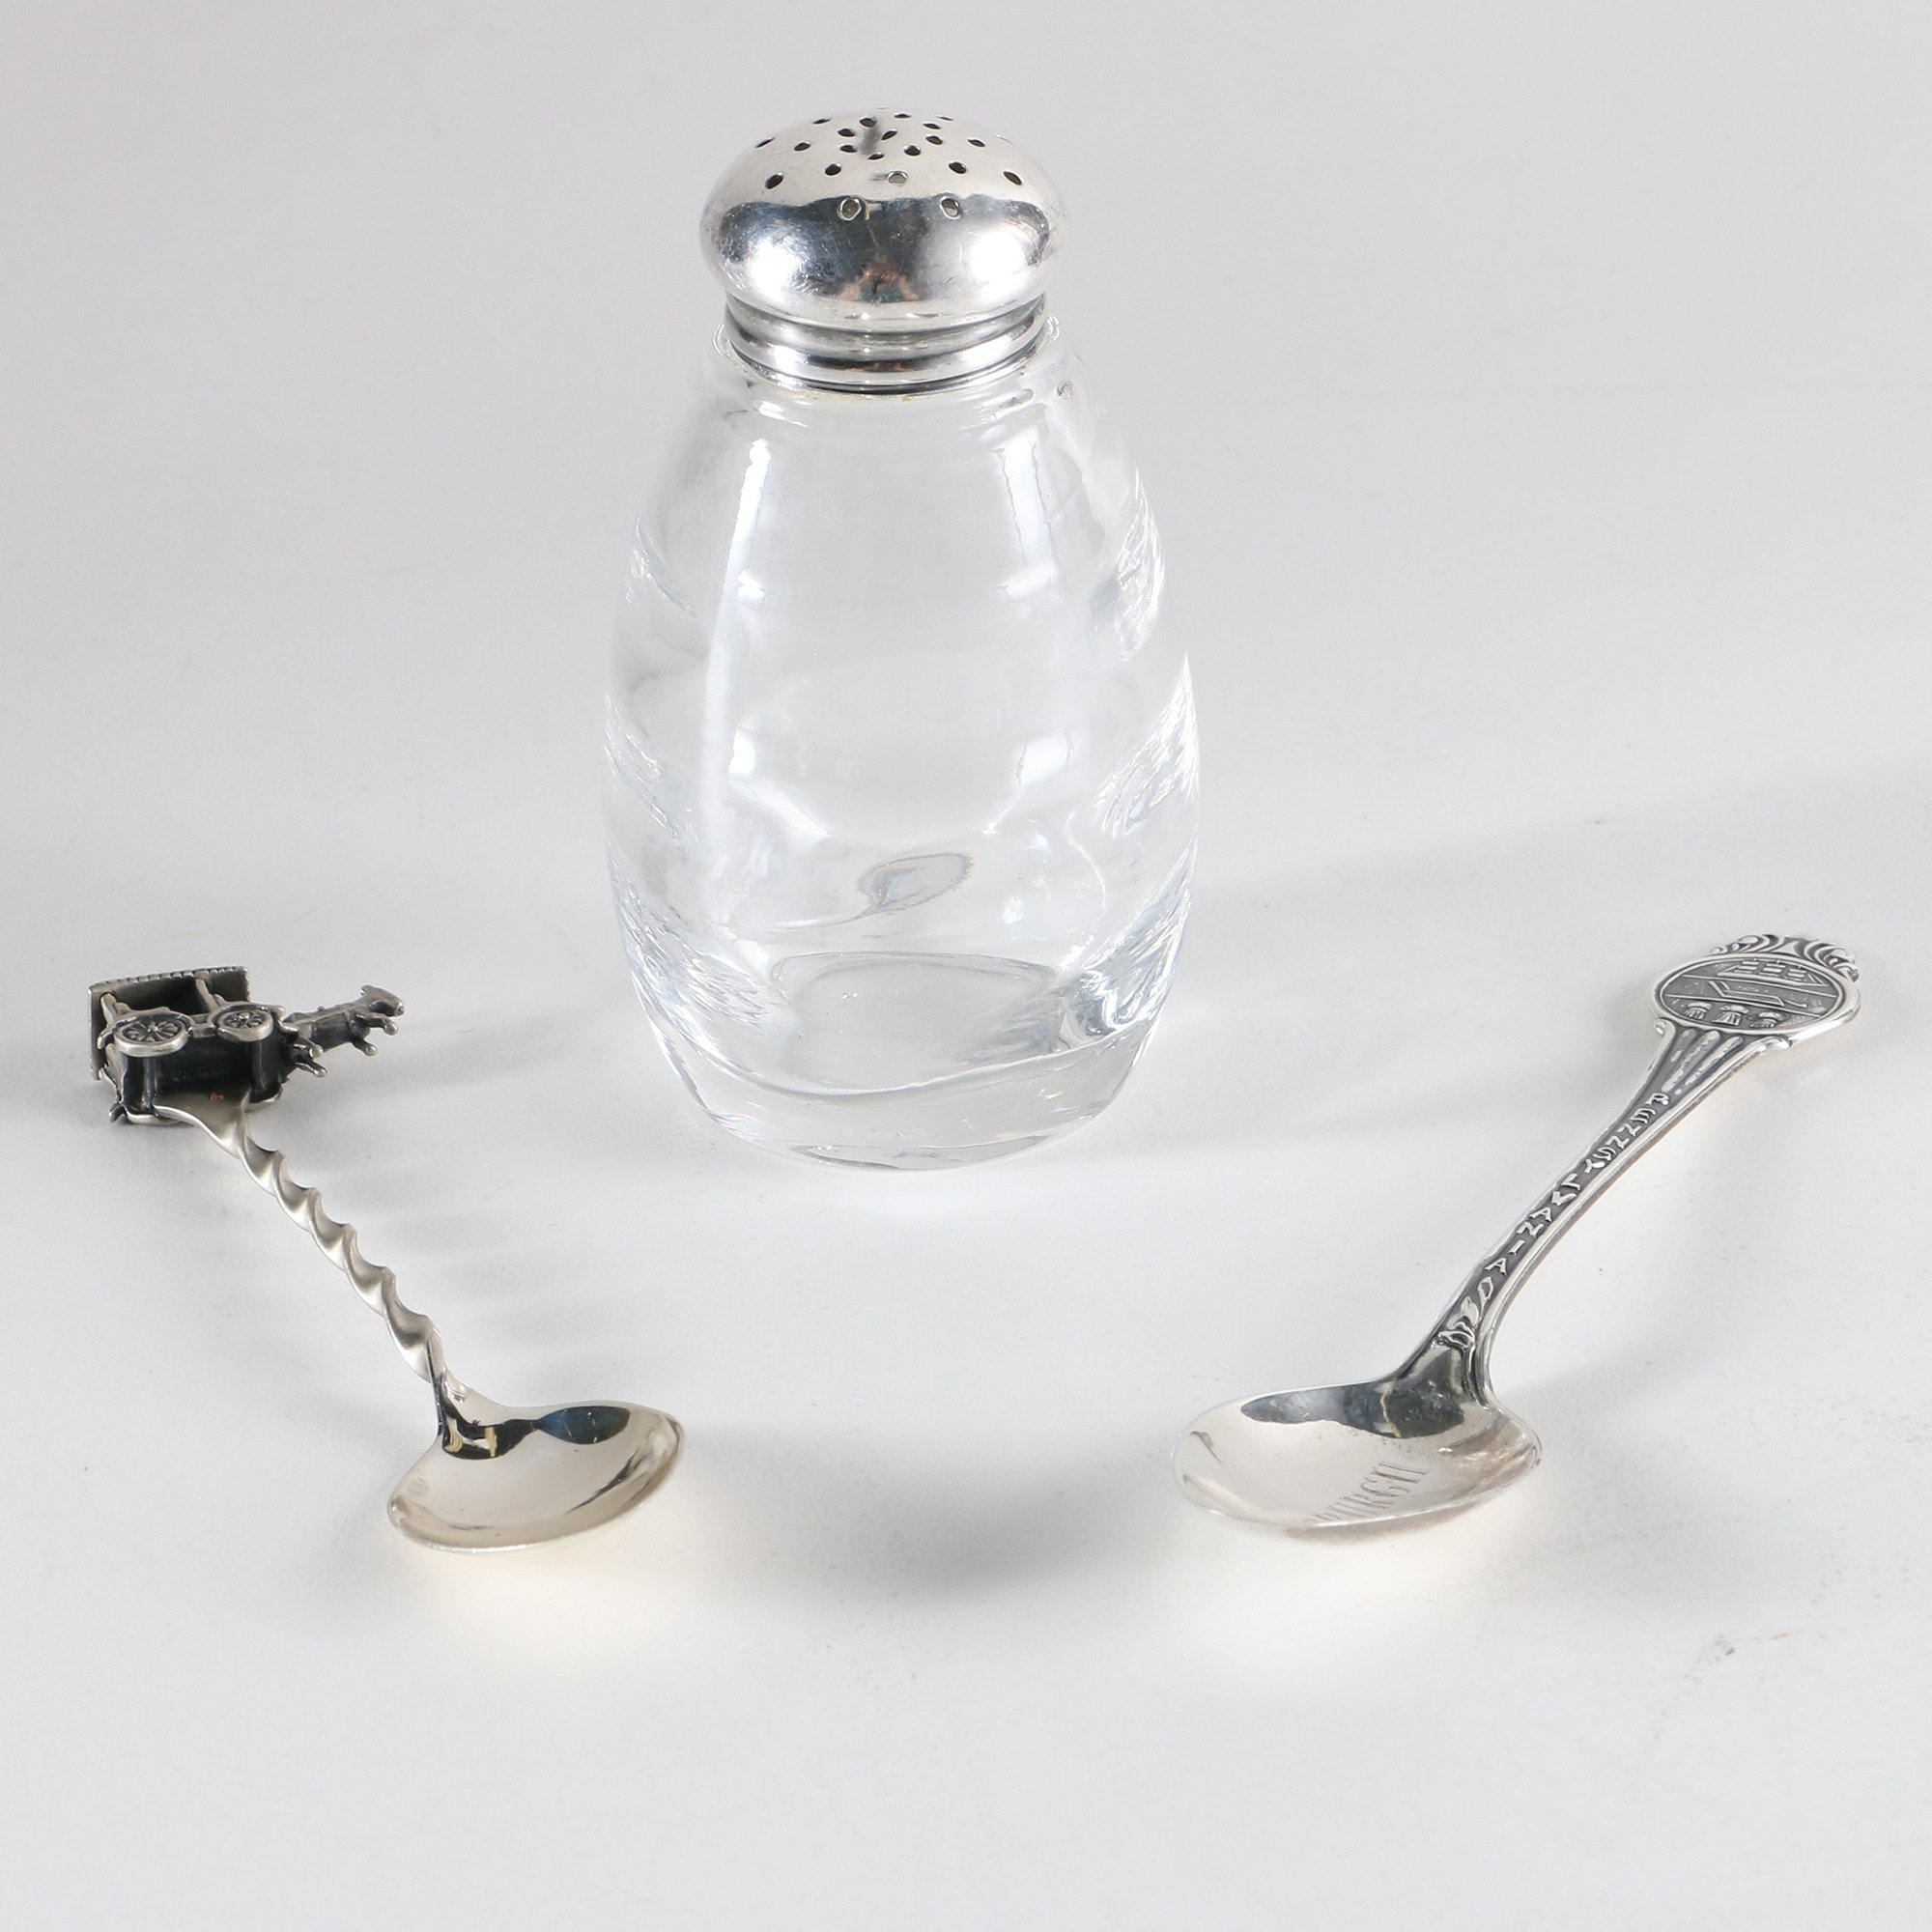 Sterling Silver Souvenir Spoons and Shaker